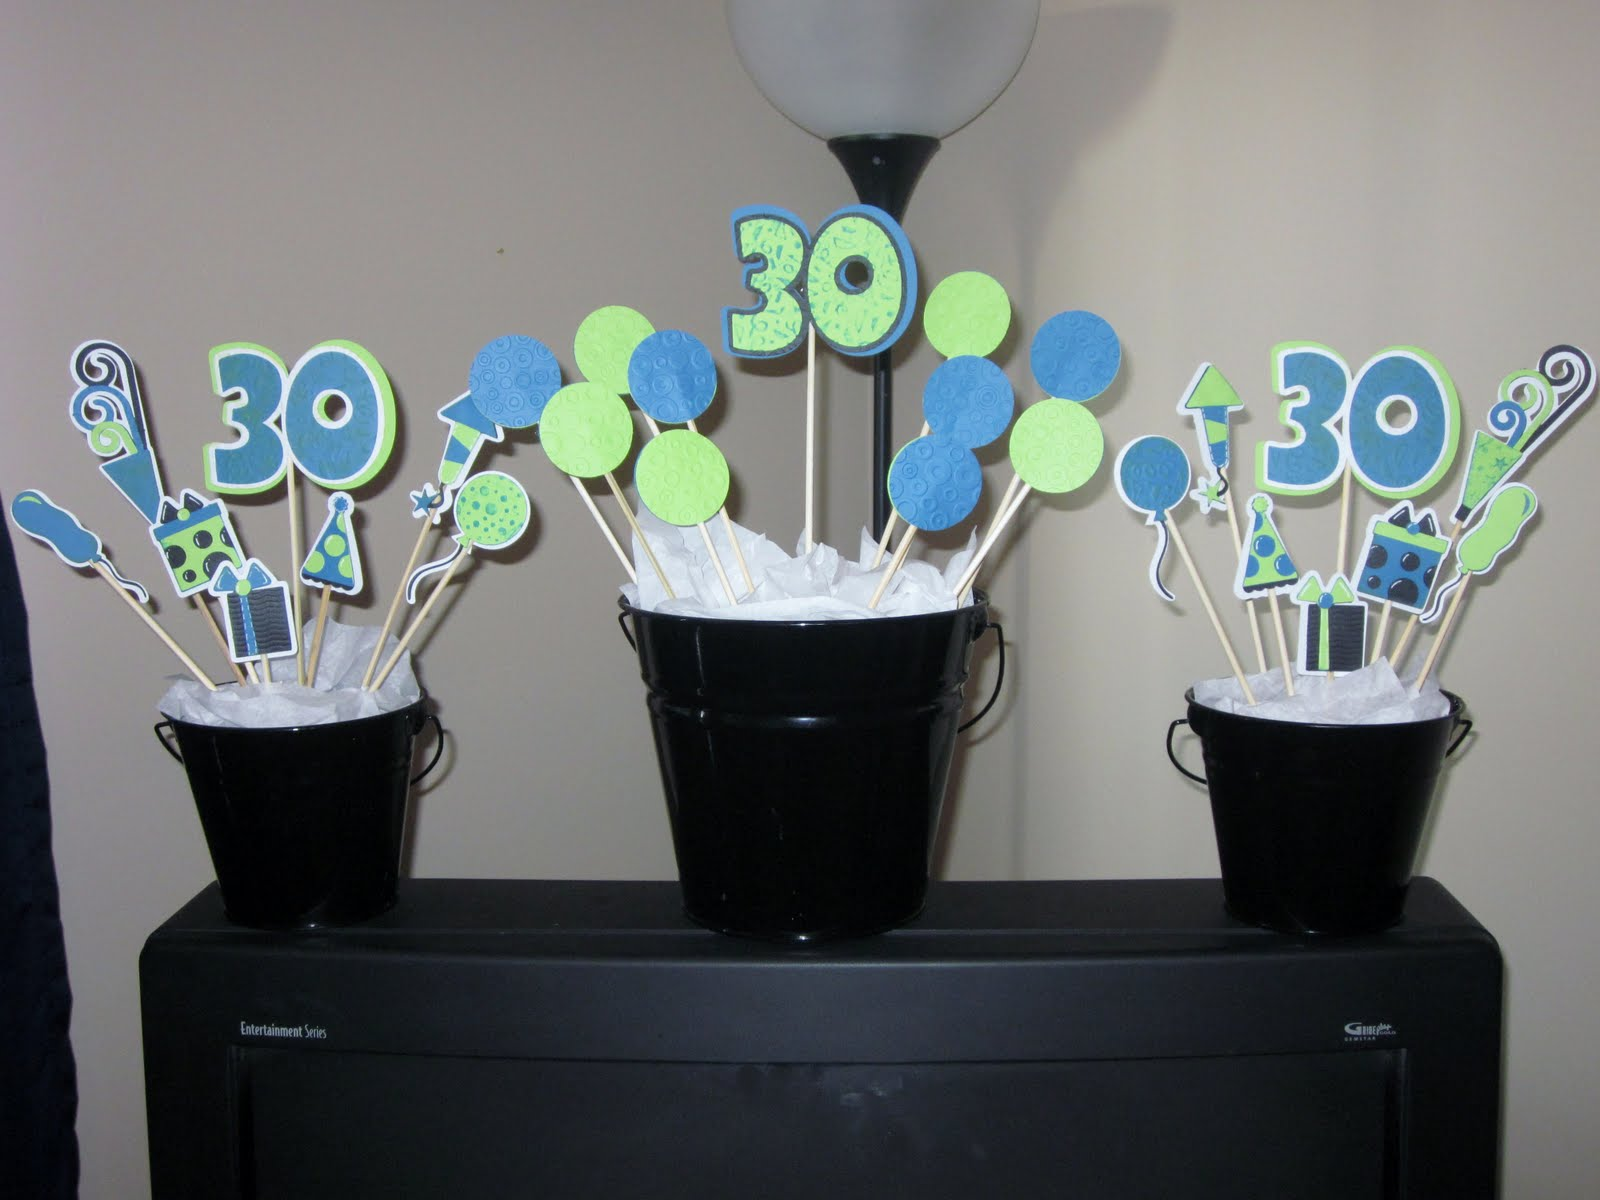 30th Birthday Decoration Ideas For Her Of Jamiek711 Designs 30th Birthday Decorations